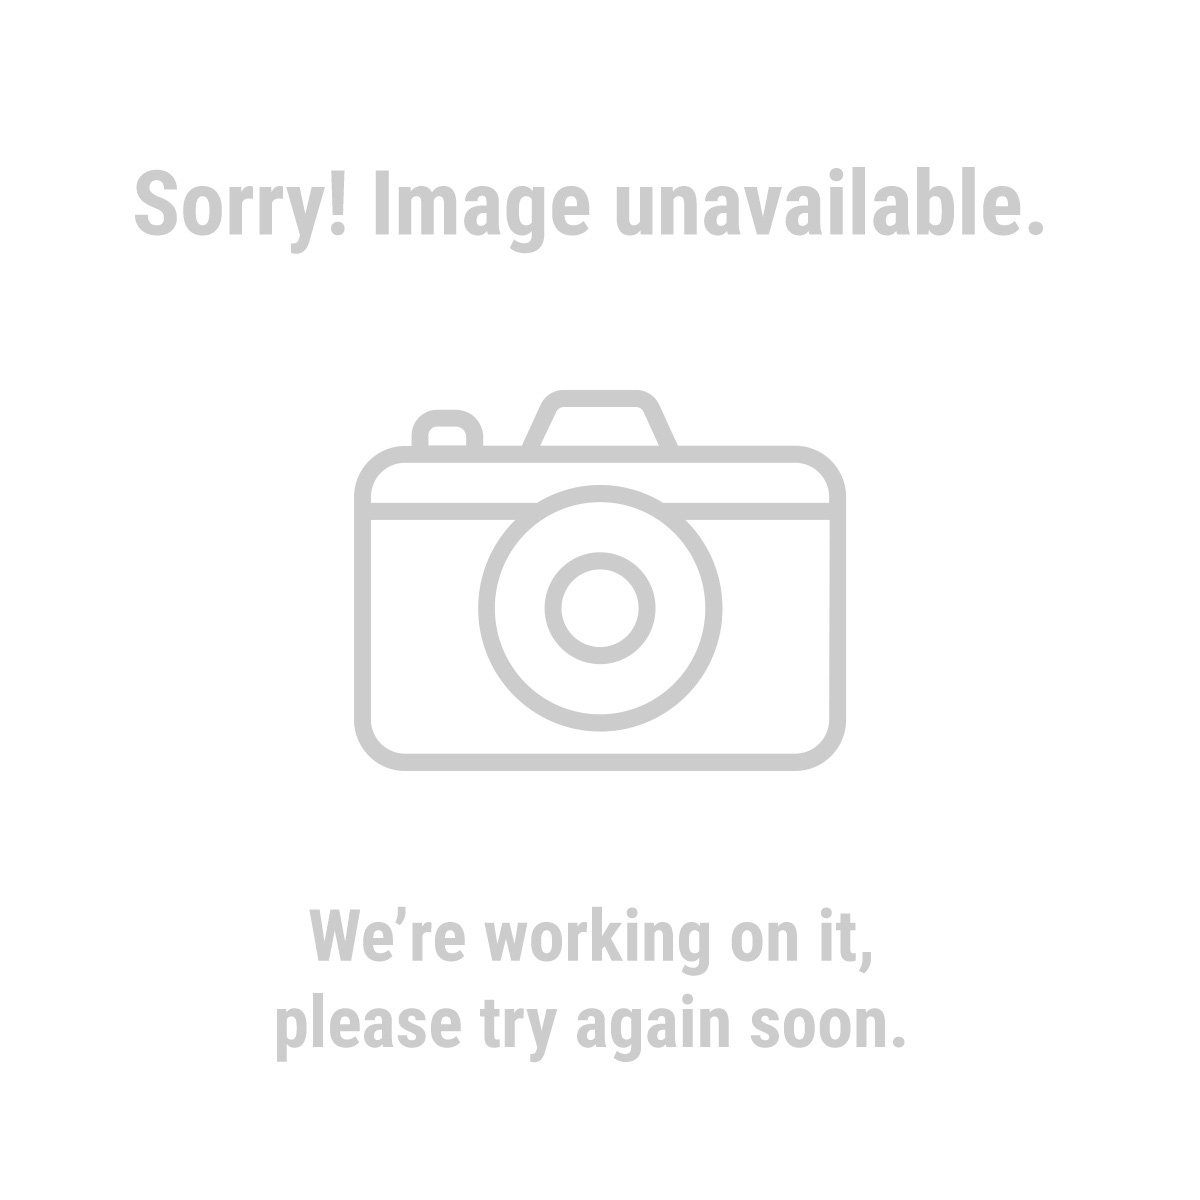 Warrior® 61502 5 Piece 2 in. Medium Grade Fiber Surface Conditioning Discs